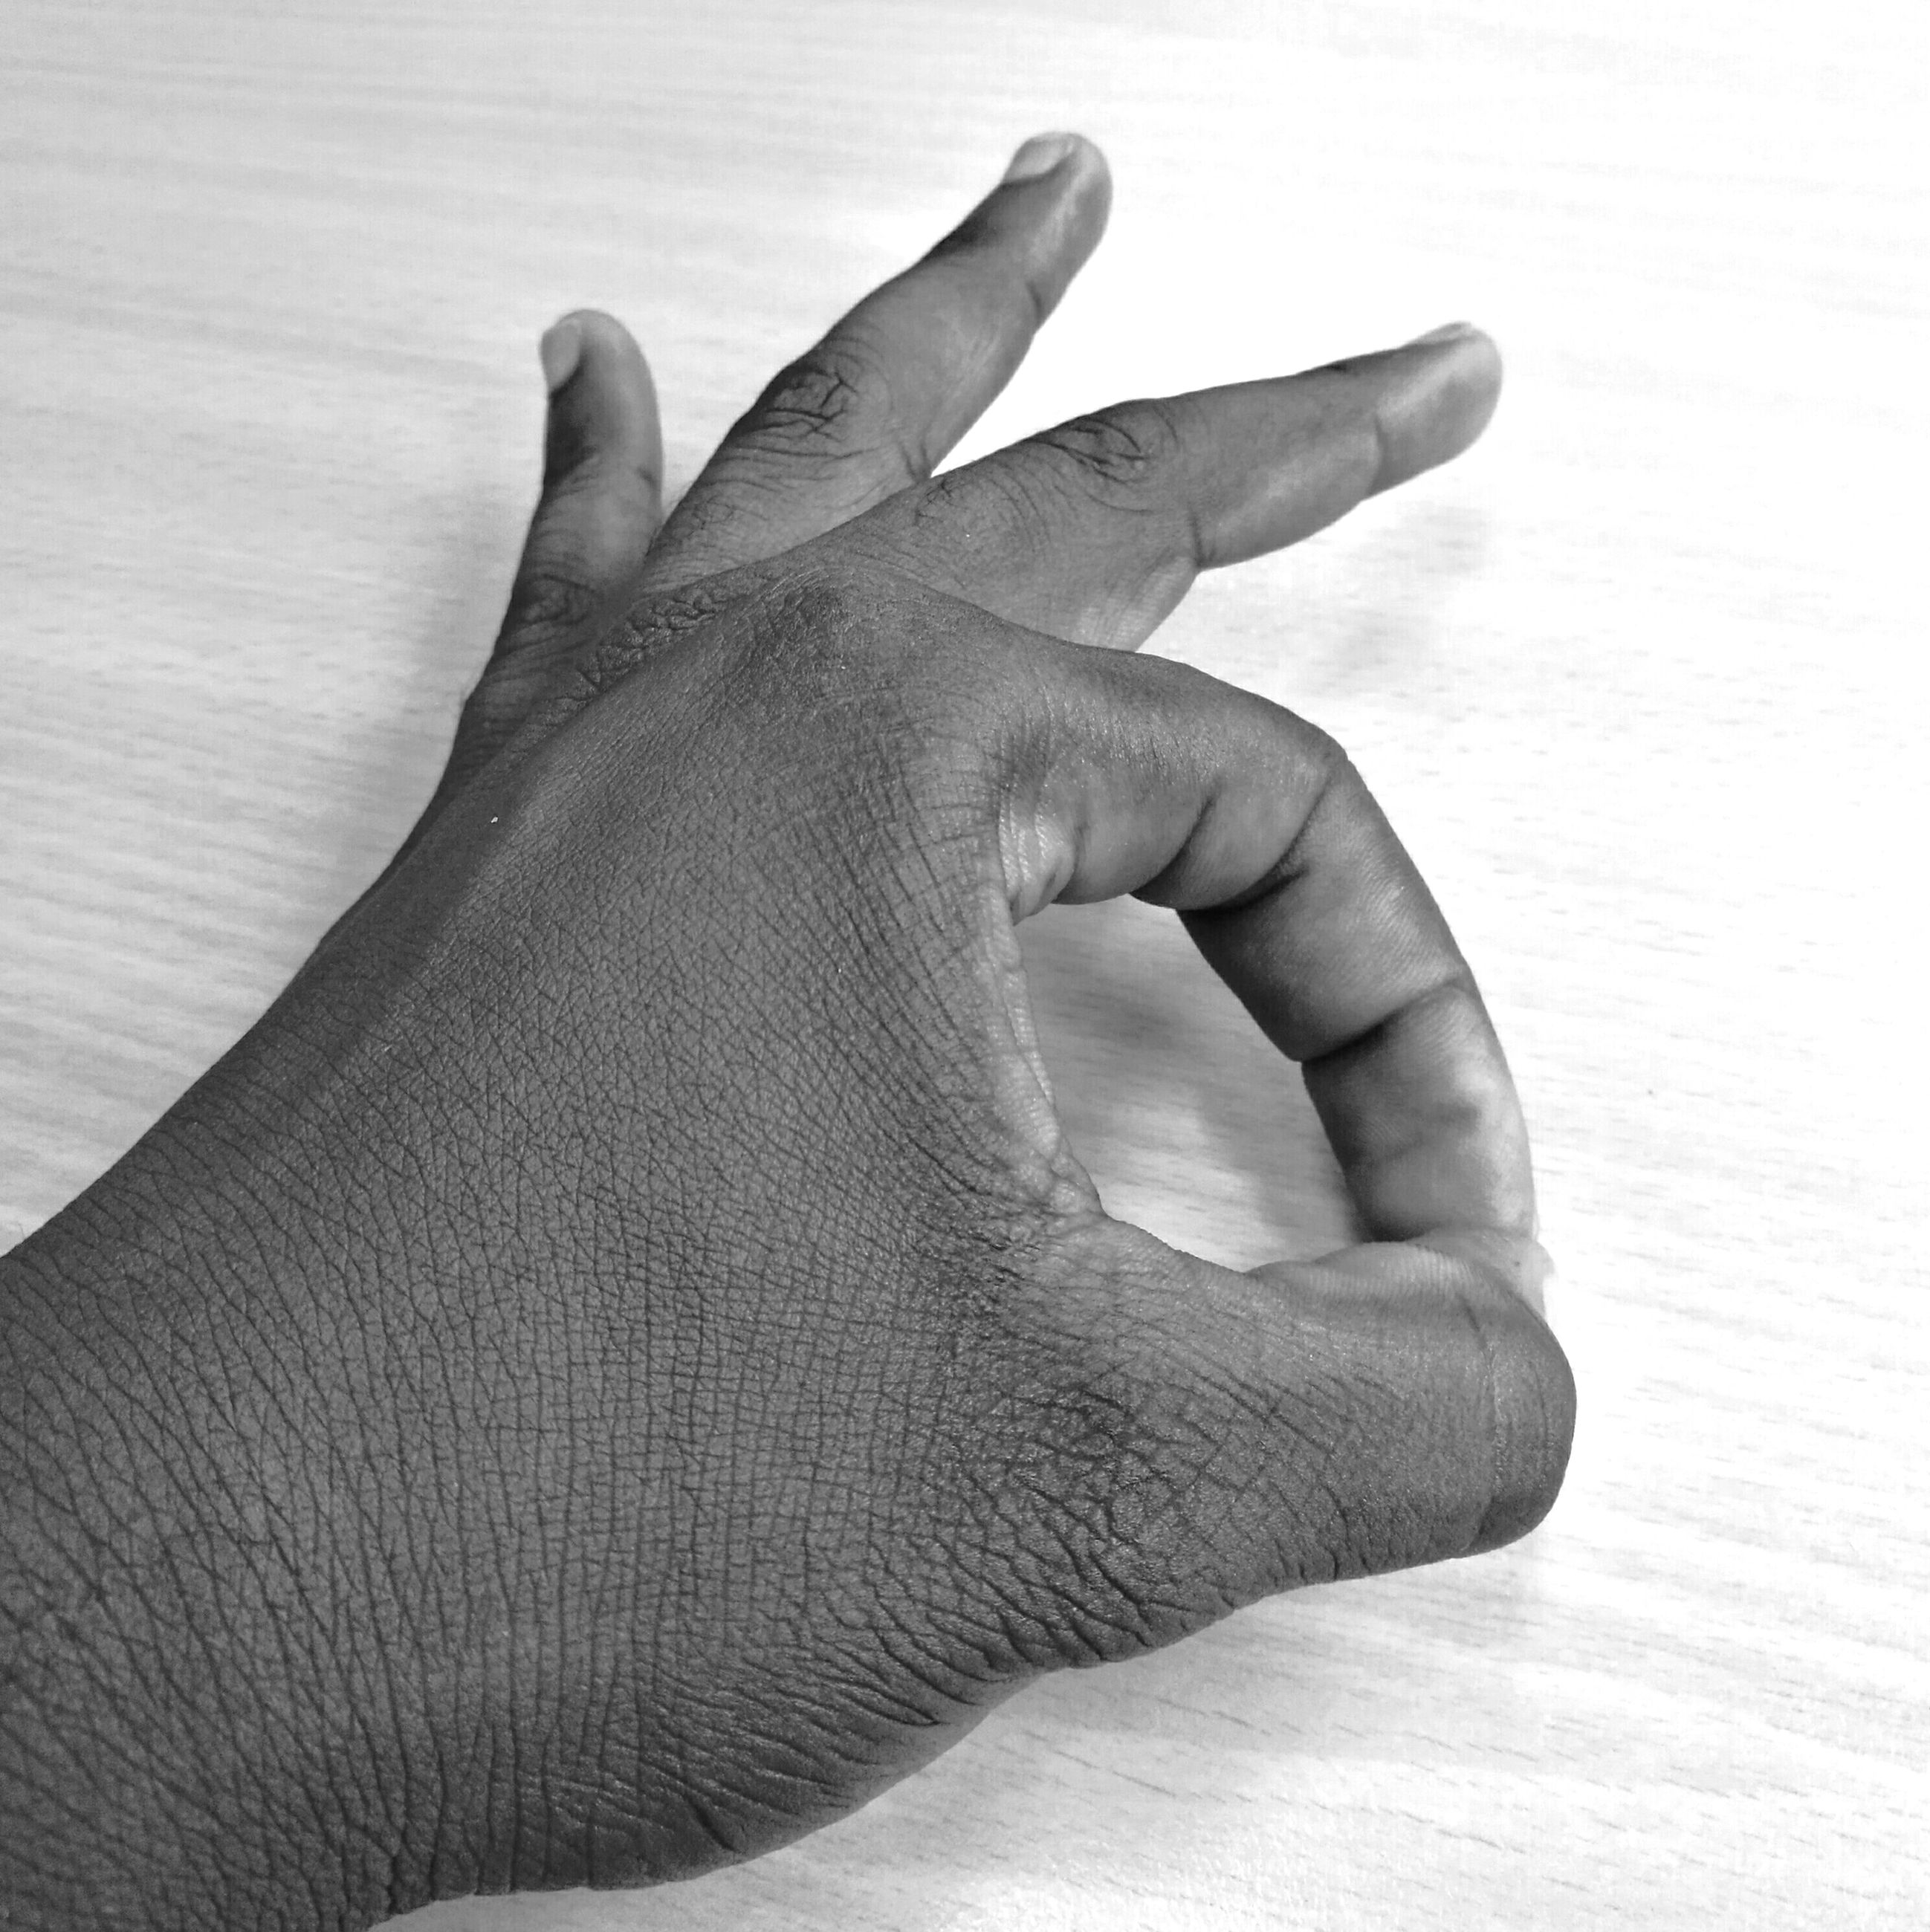 human hand, human body part, human finger, real people, one person, close-up, indoors, day, people